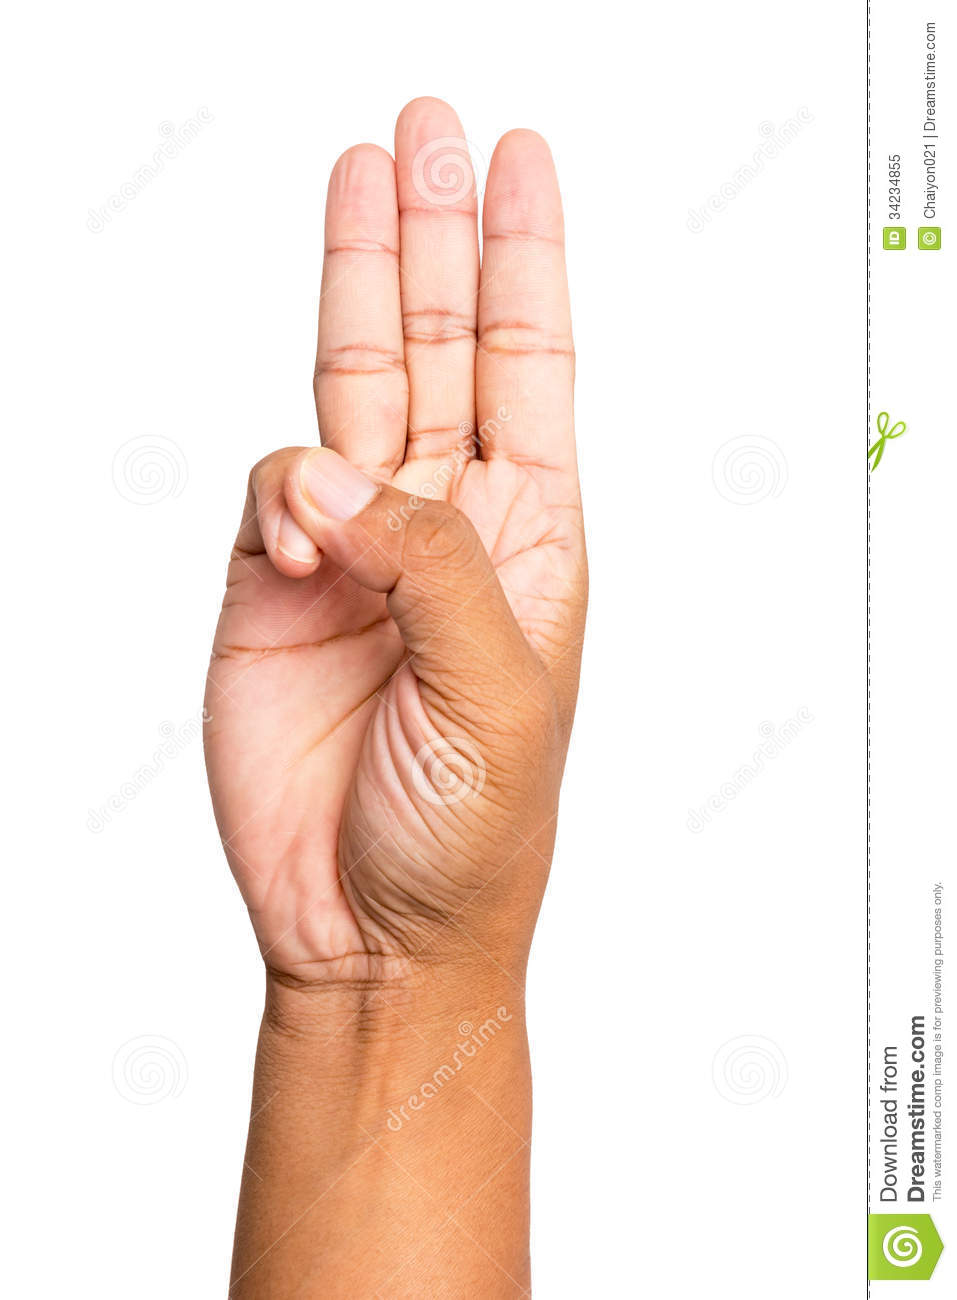 Scout Honor Hand Gesture Stock Image Image Of Sign Gesture 34234855